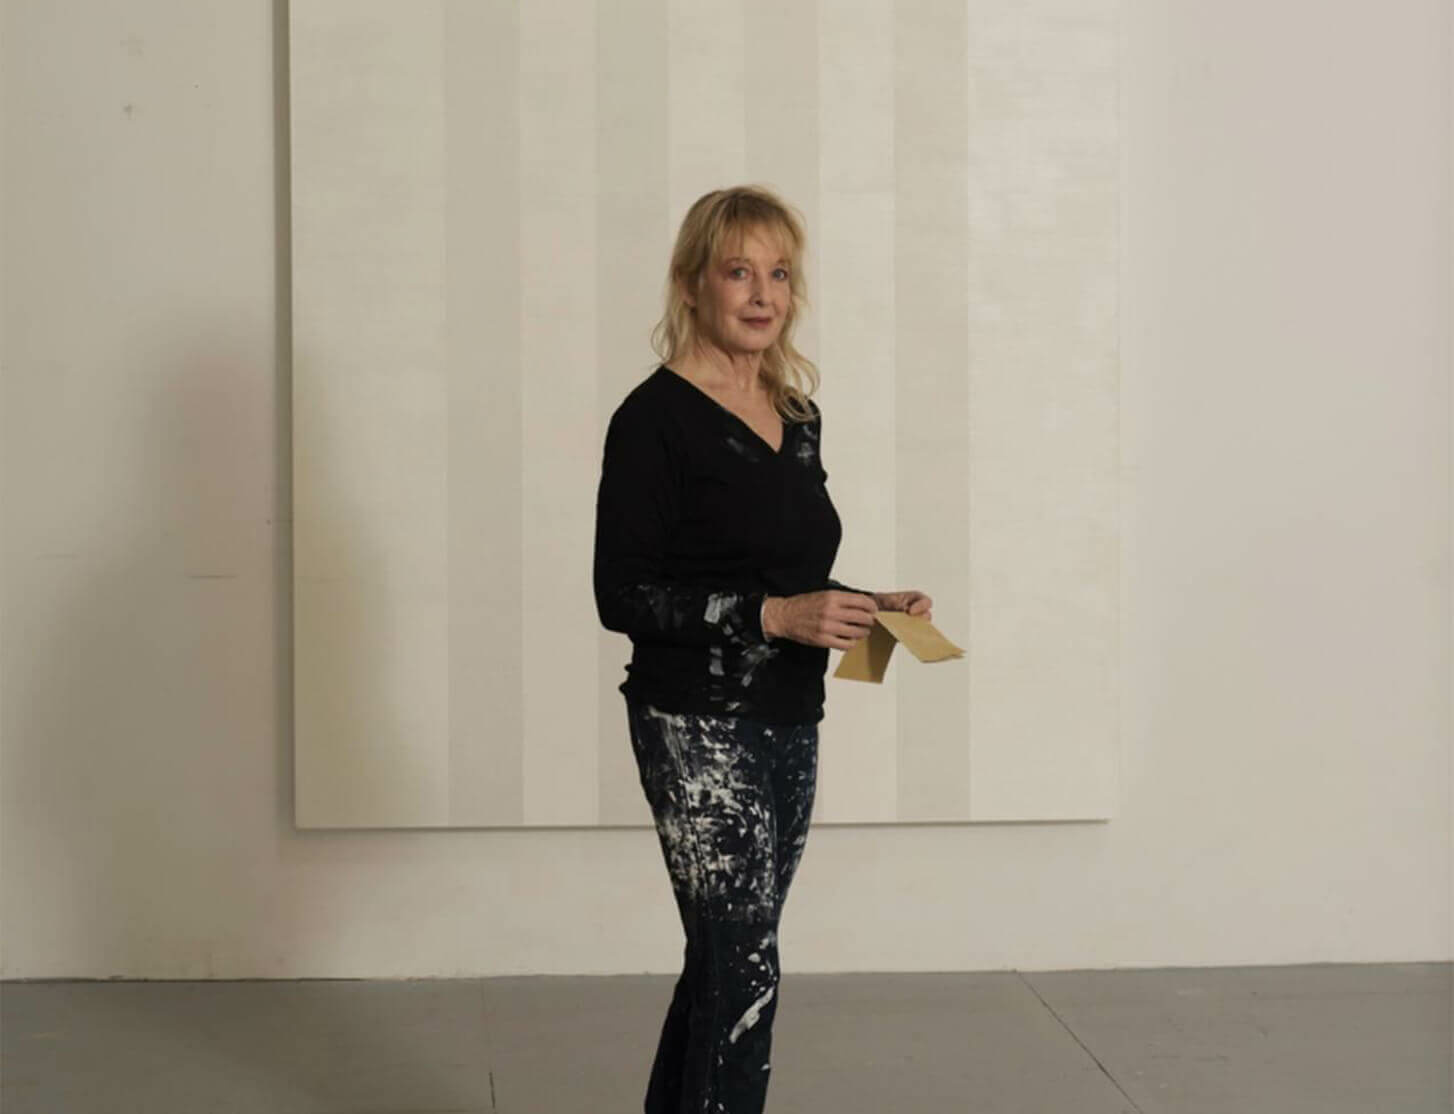 With Three New Shows, Artist Mary Corse is Finally Having Her Moment - WSJ